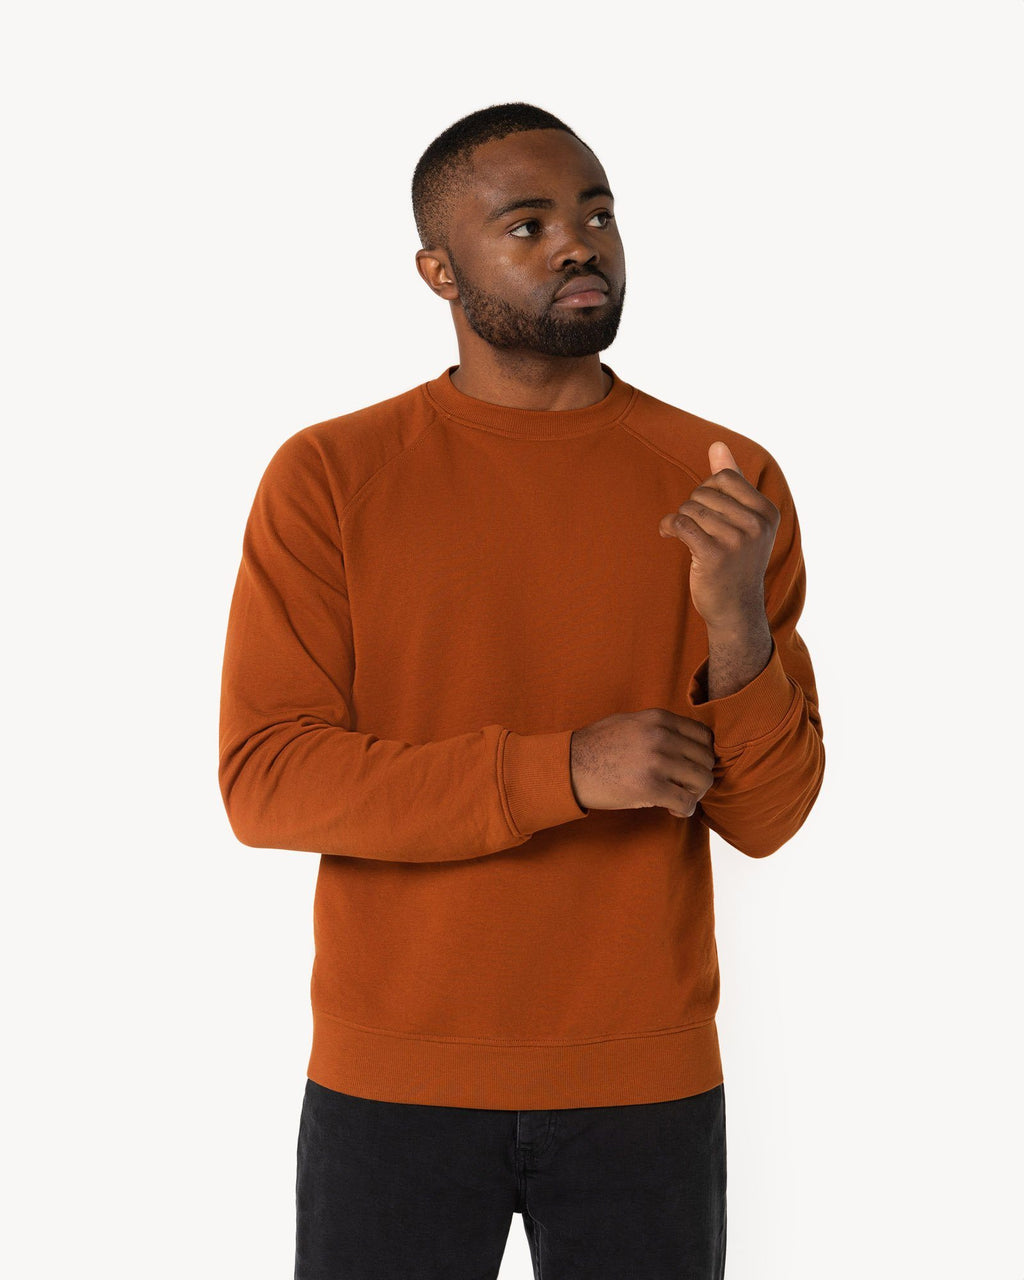 variant_1 | EN Orange Sweatshirt Men | DE Sweatshirt Orange Herren